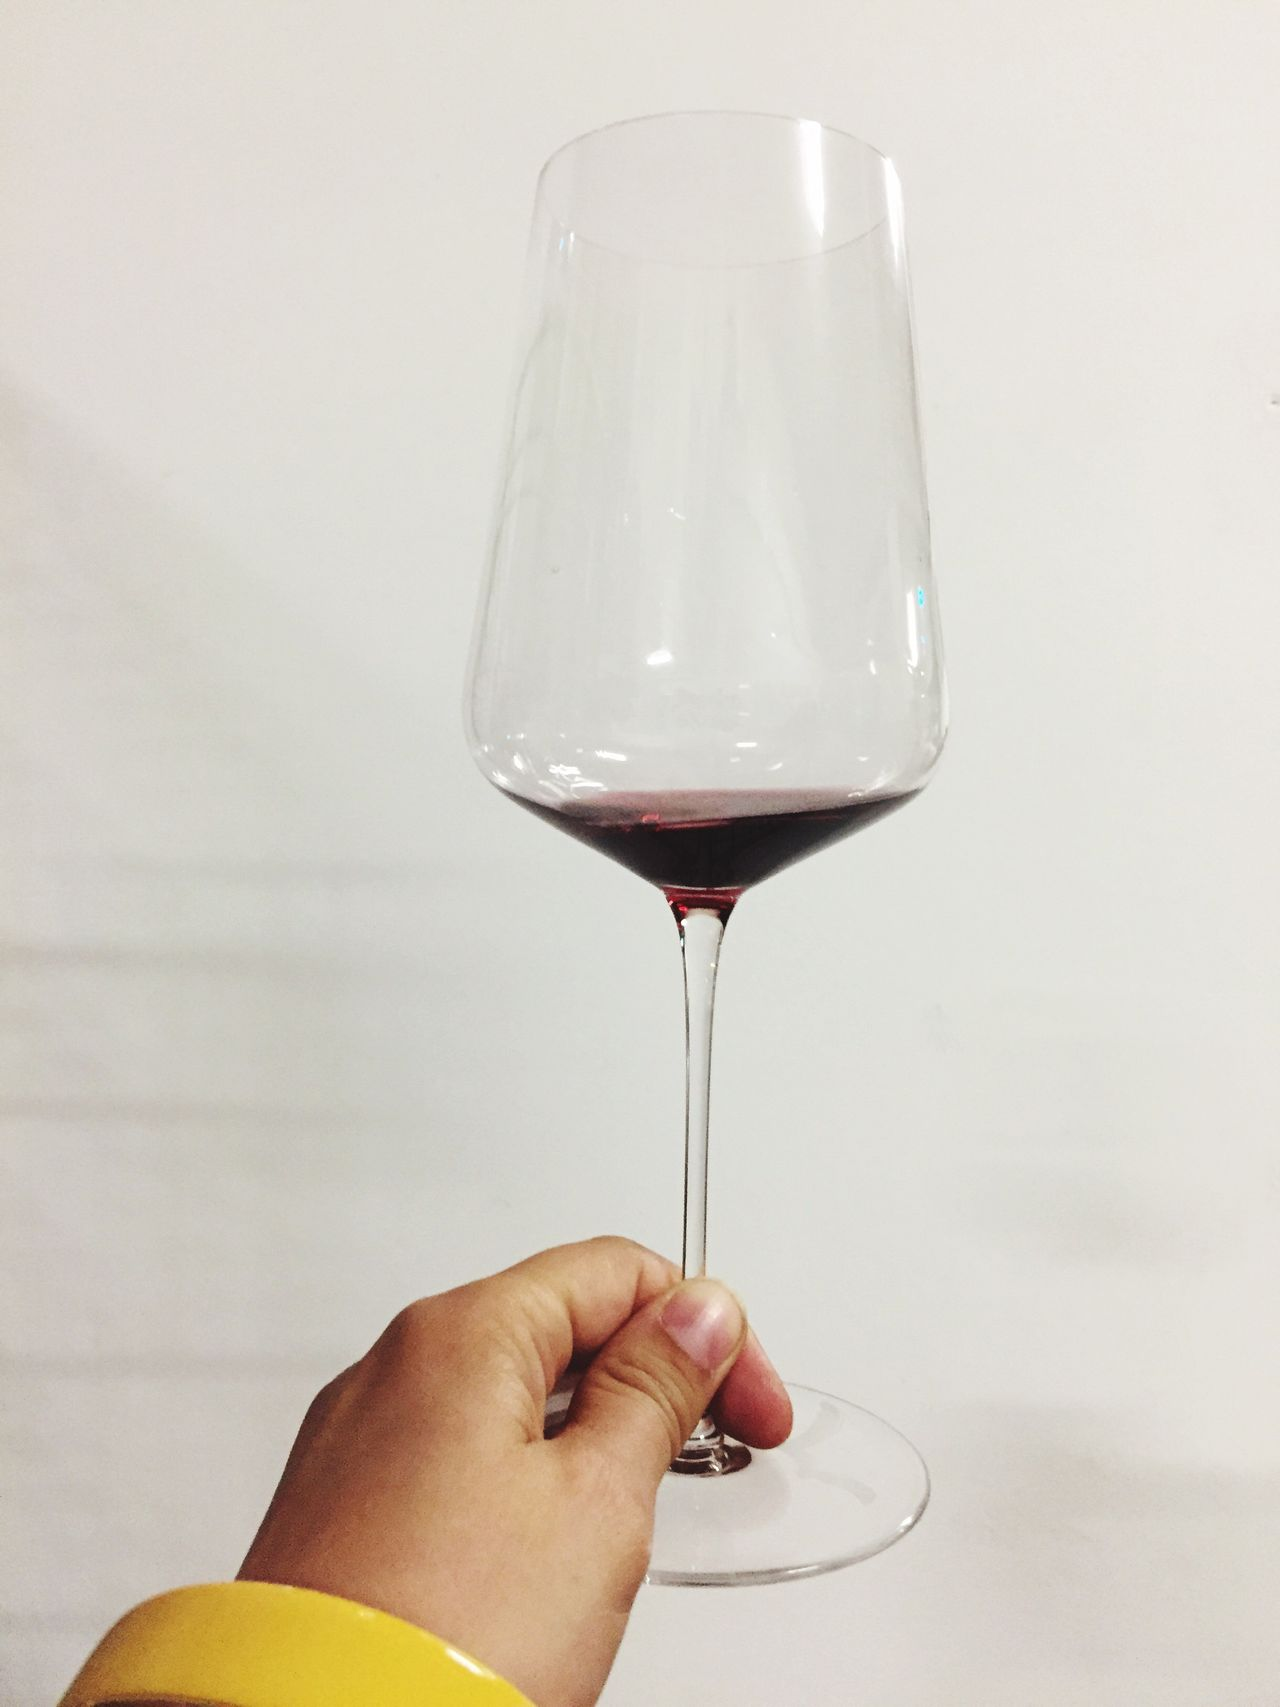 Wine Not EyeEm Selects Human Hand Human Body Part One Person Holding Real People Personal Perspective Food And Drink Human Finger Drink Unrecognizable Person Wineglass Food Wine Refreshment Freshness Indoors  Lifestyles Close-up White Background Day Wine Moments